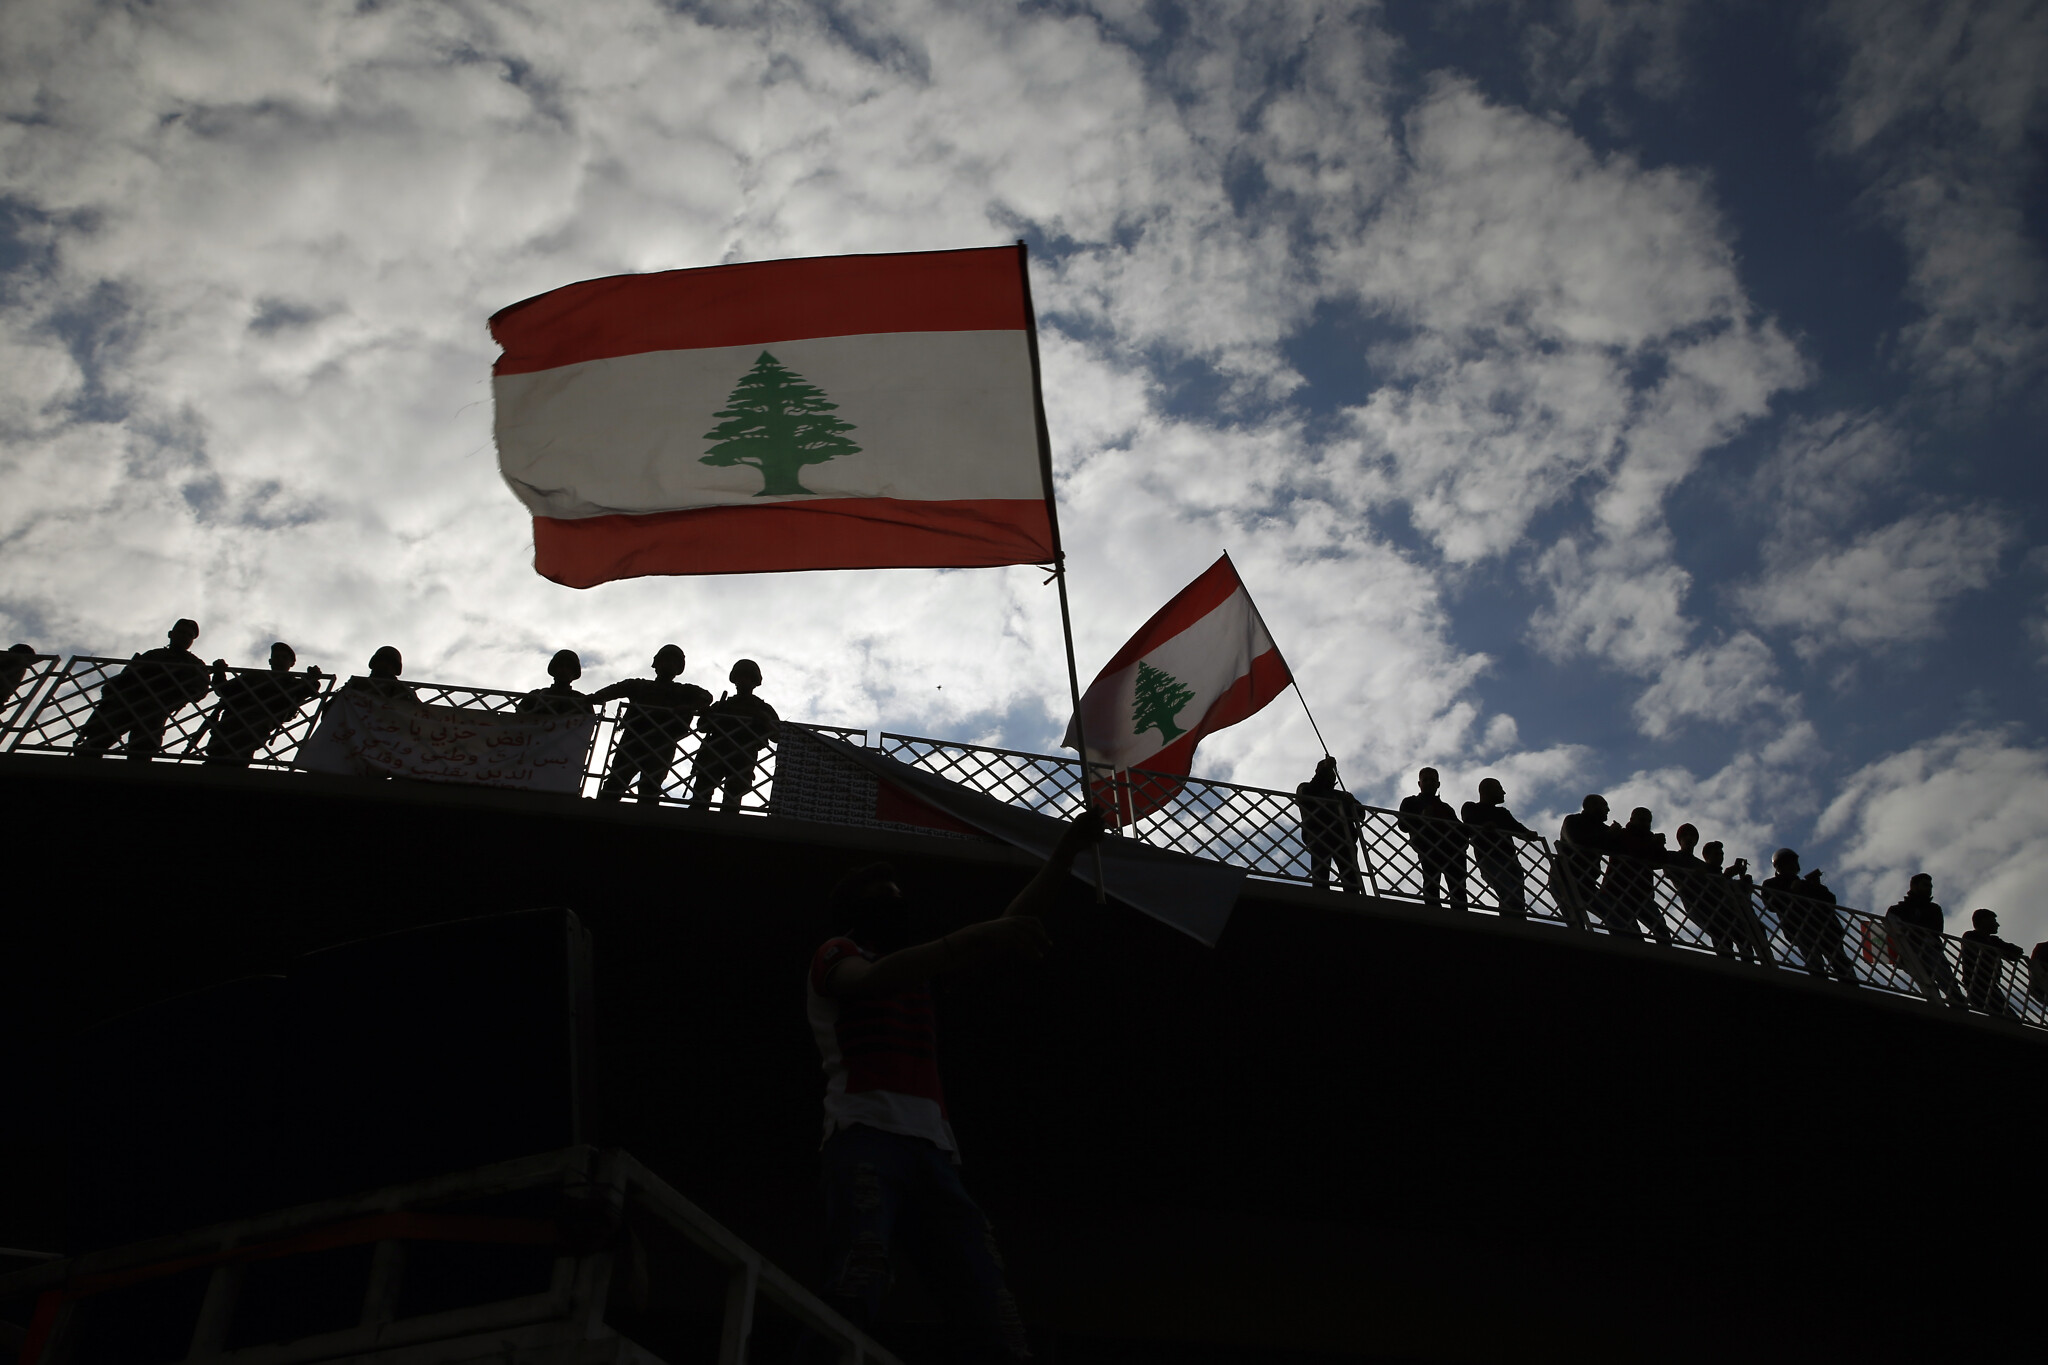 35 injured as protests turn violent for second night in Lebanon